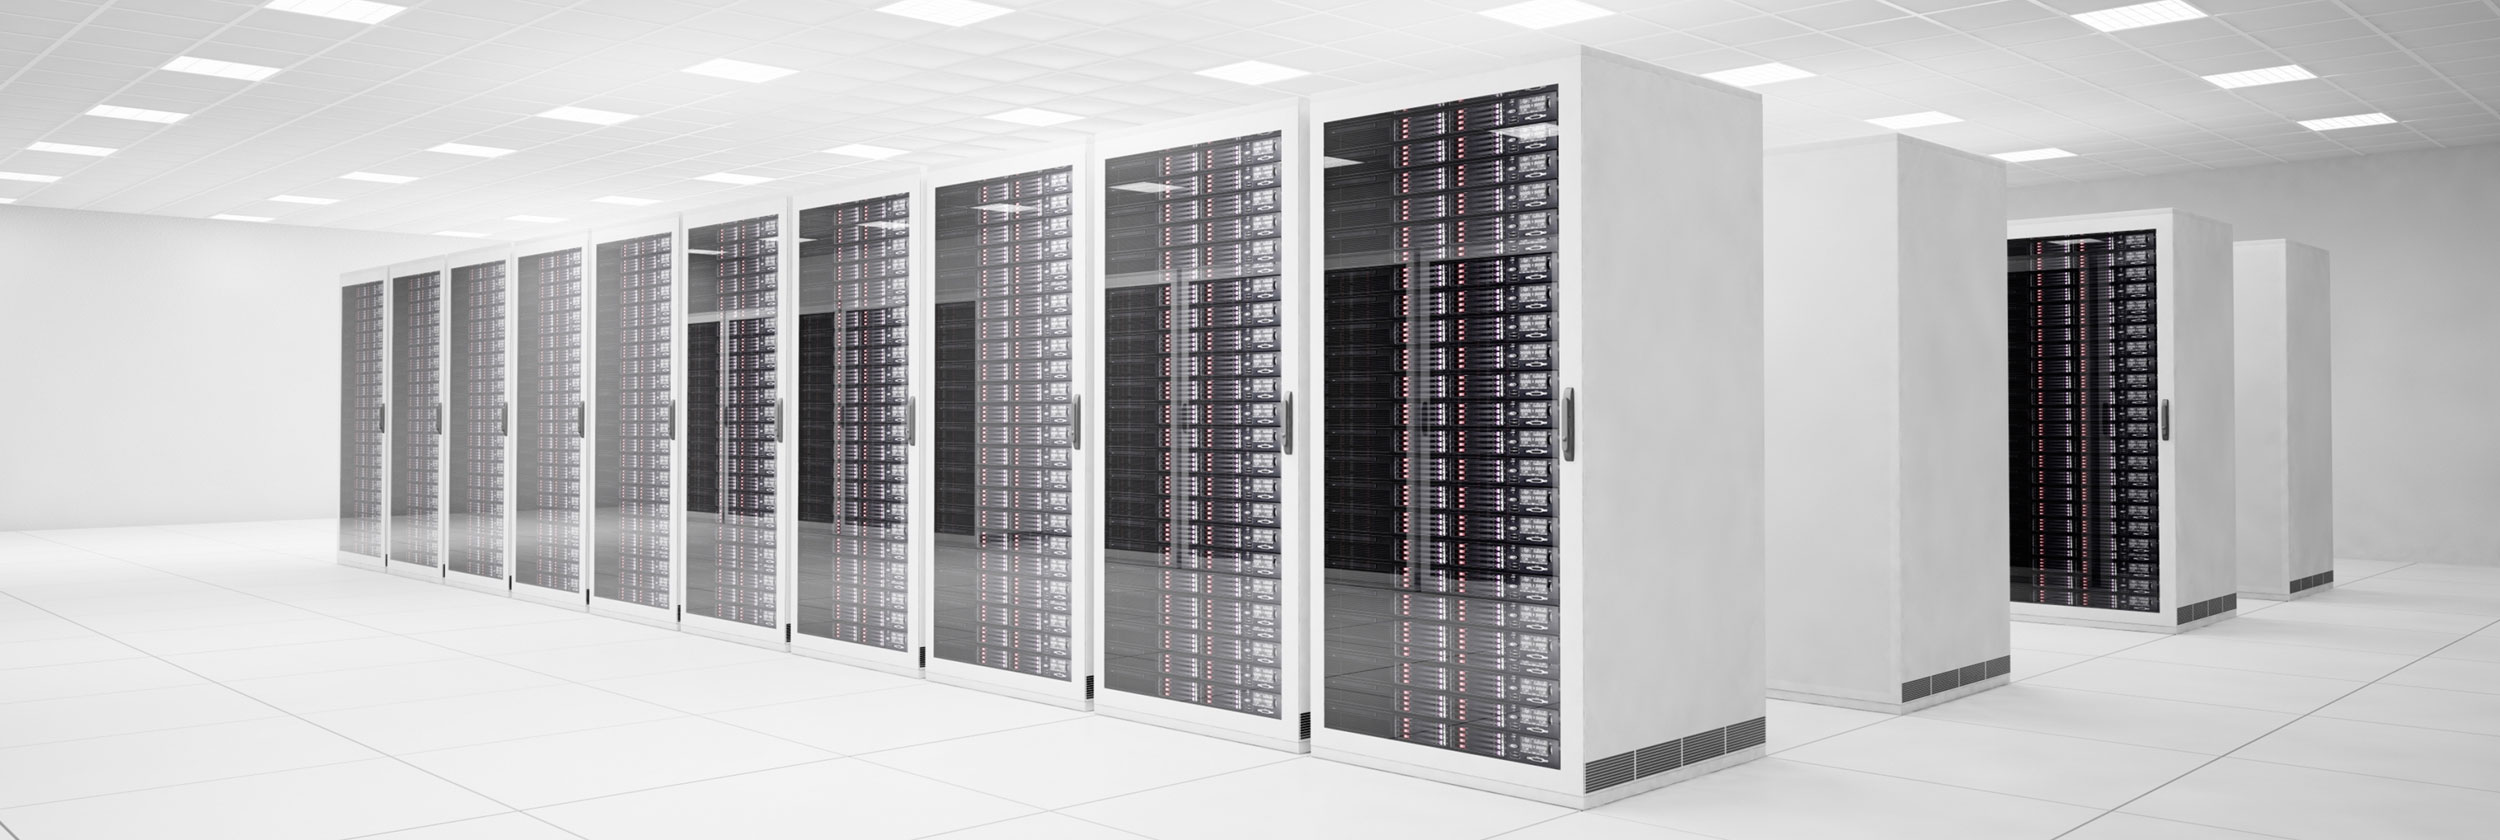 data_center_hosting_colocation_cpq_salesforce